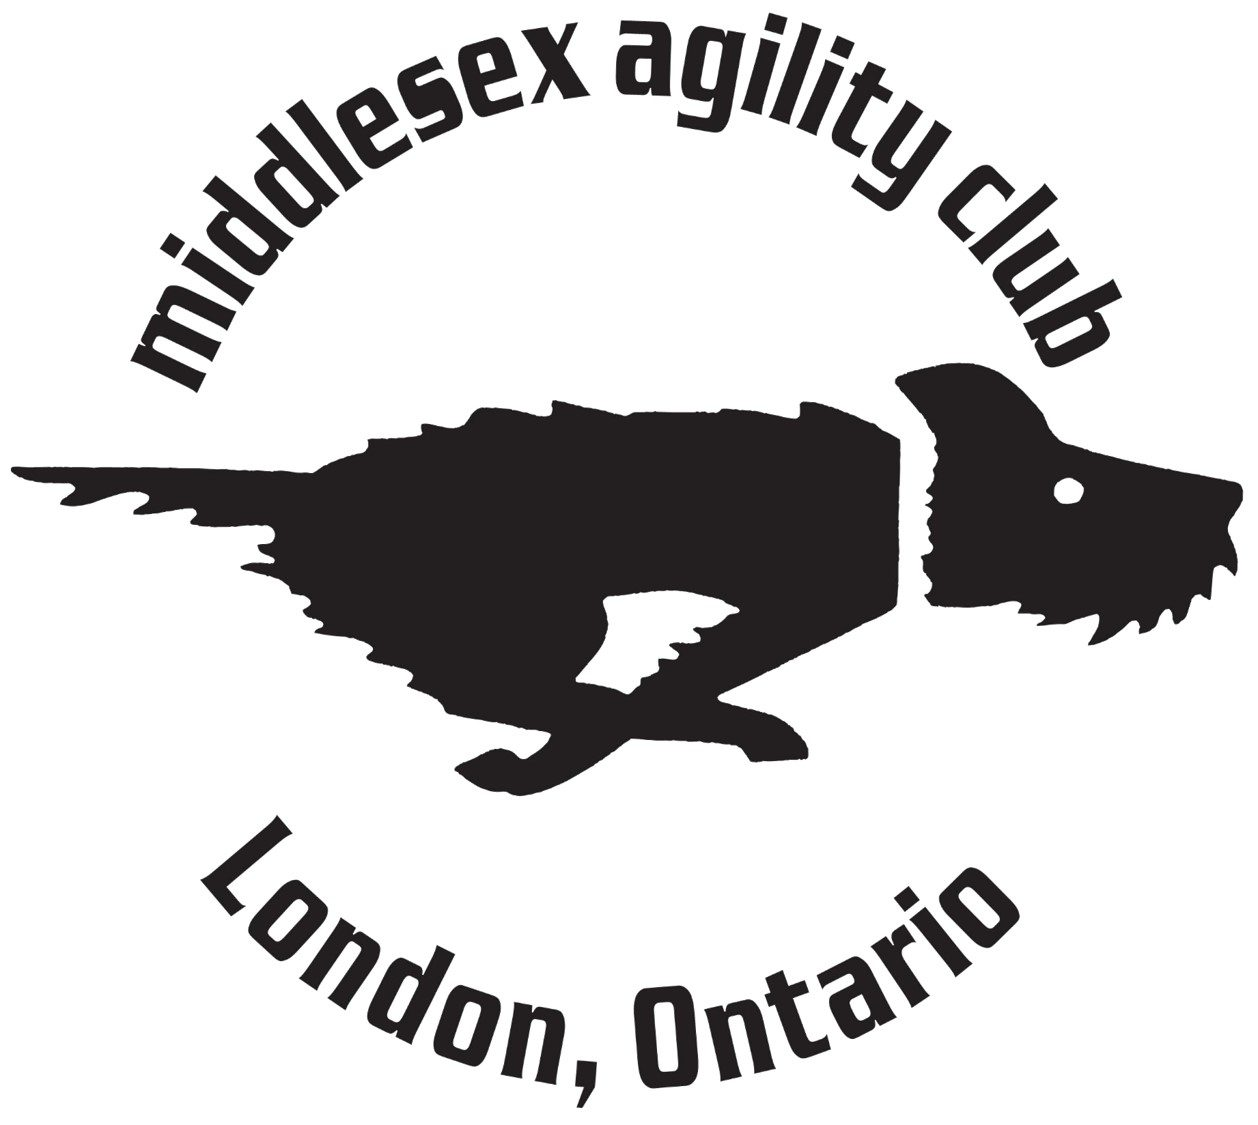 Middlesex Agility Club